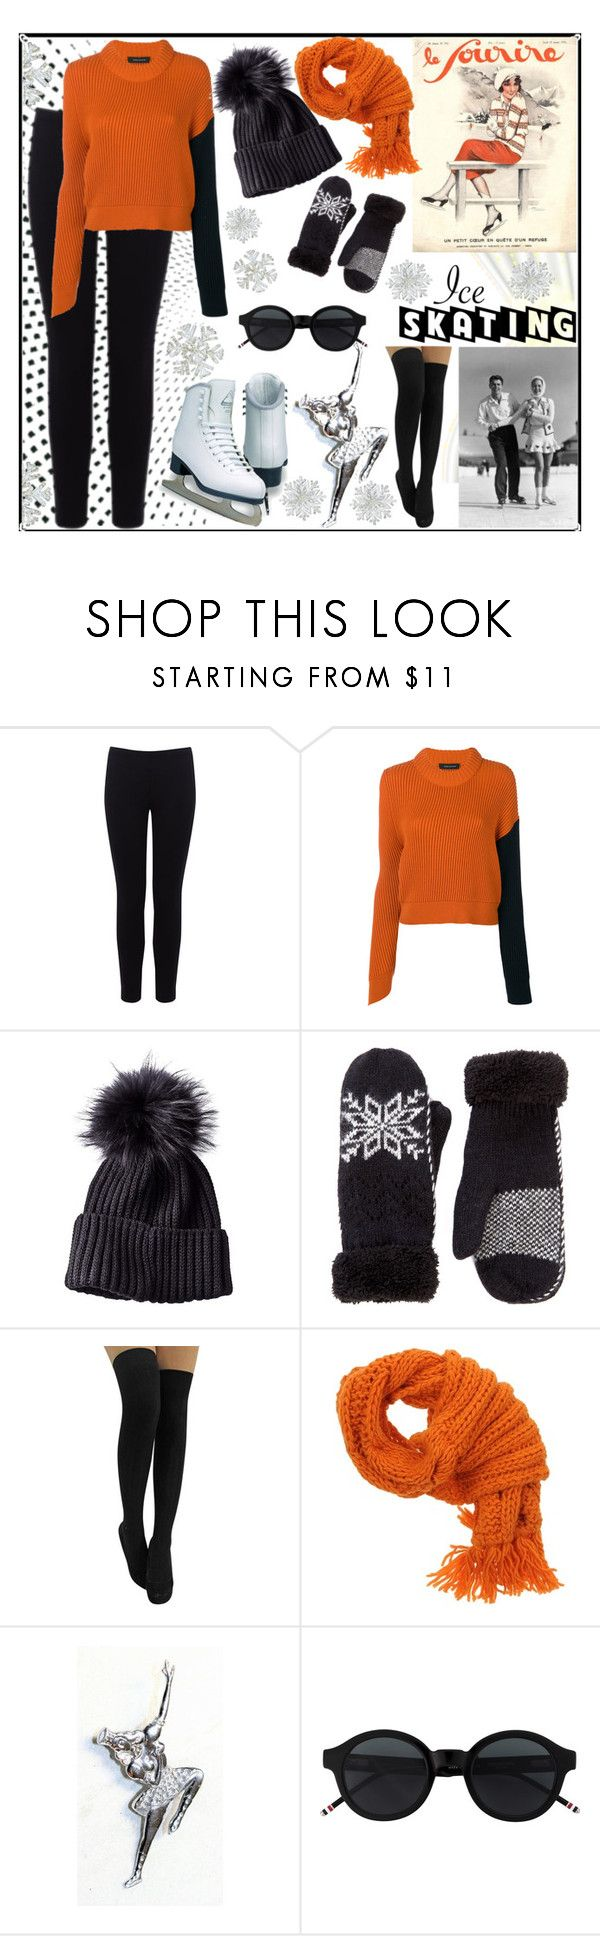 """""""Ice Skating"""" by jeneric2015 ❤ liked on Polyvore featuring Warehouse, Pinko and iceskatingoutfit"""